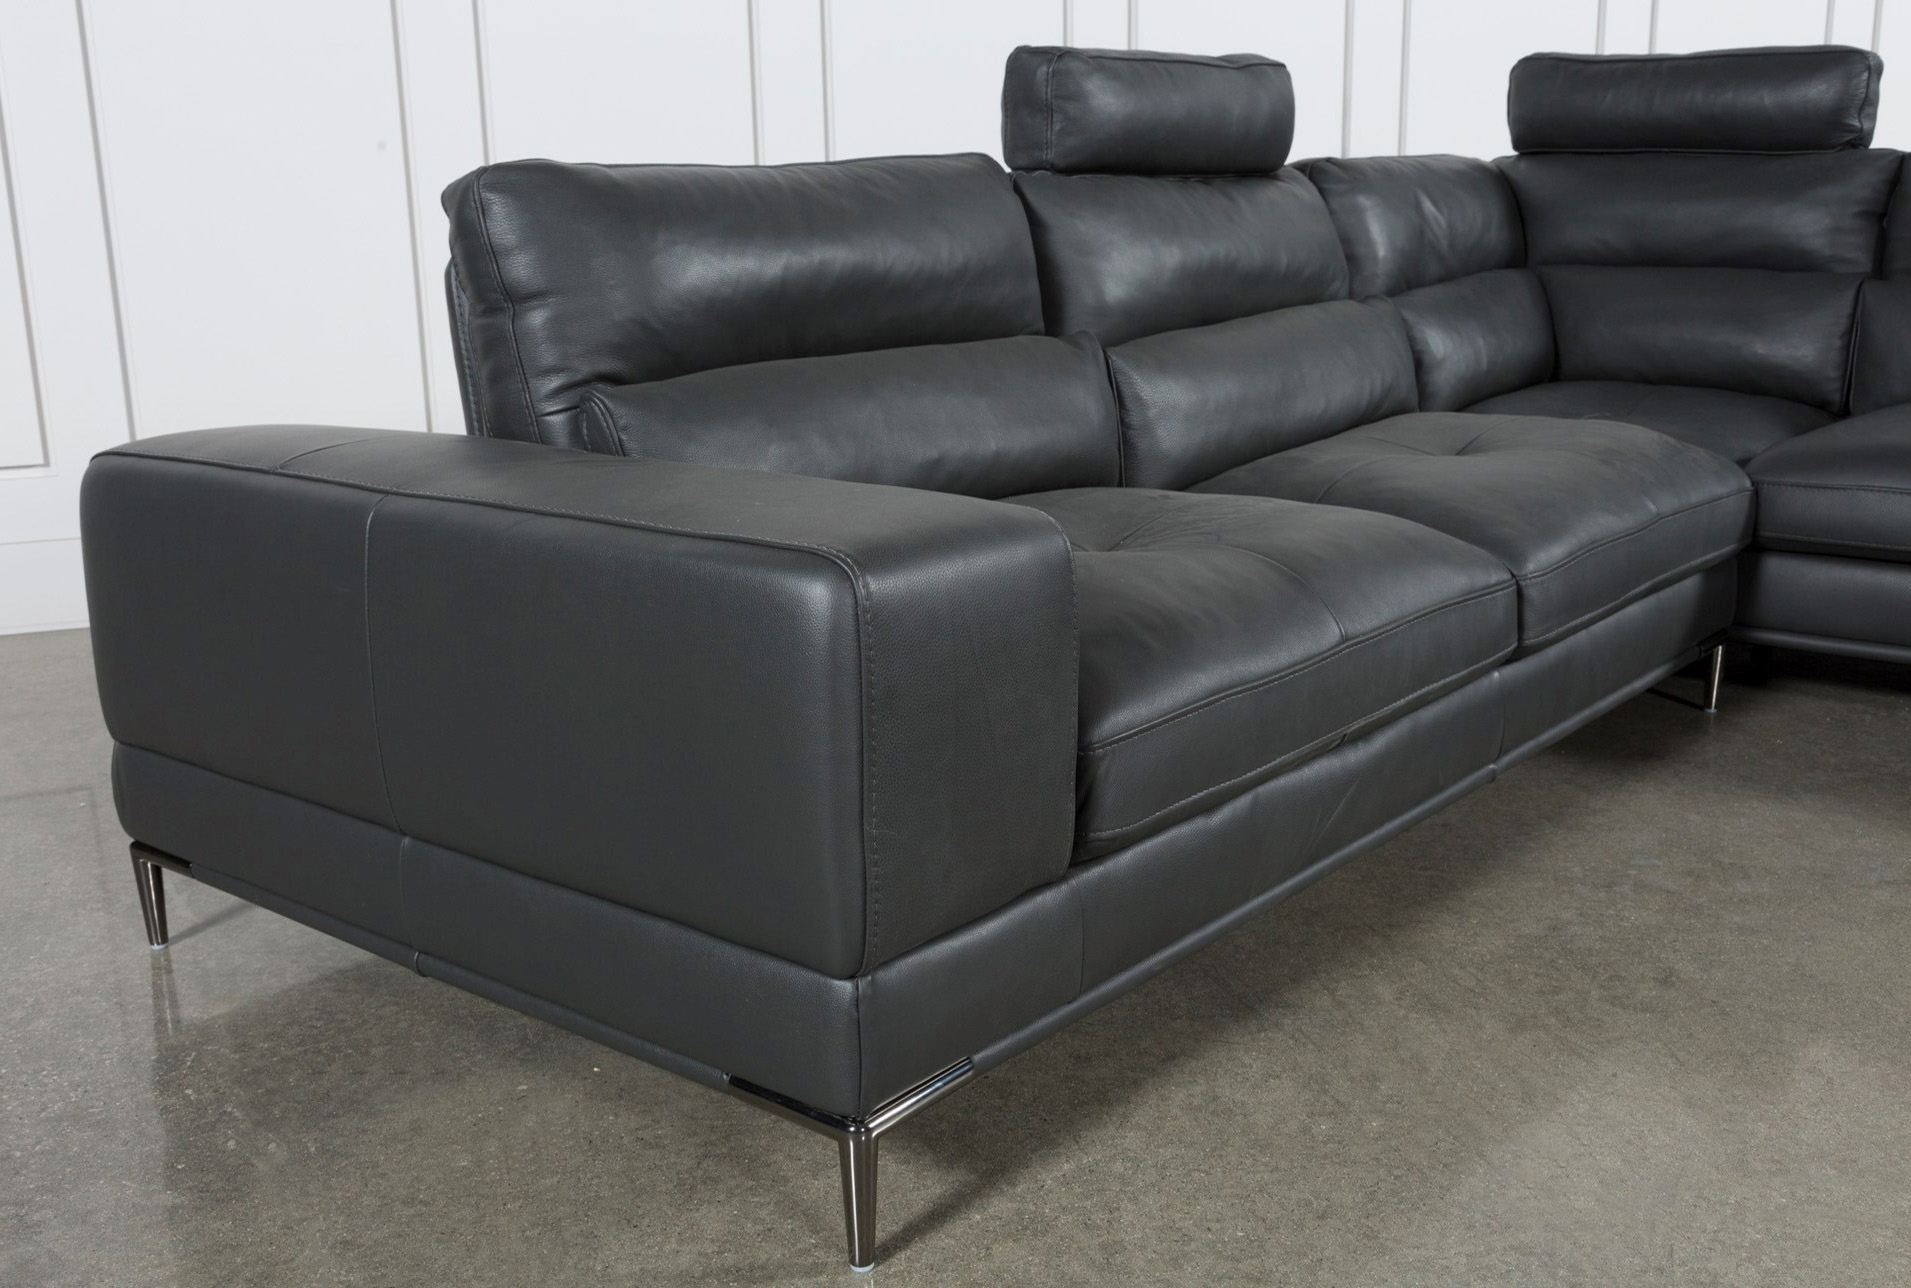 Tenny Dark Grey 2 Piece Right Facing Chaise Sectional W/2 Headrest For Tenny Dark Grey 2 Piece Left Facing Chaise Sectionals With 2 Headrest (Image 24 of 25)